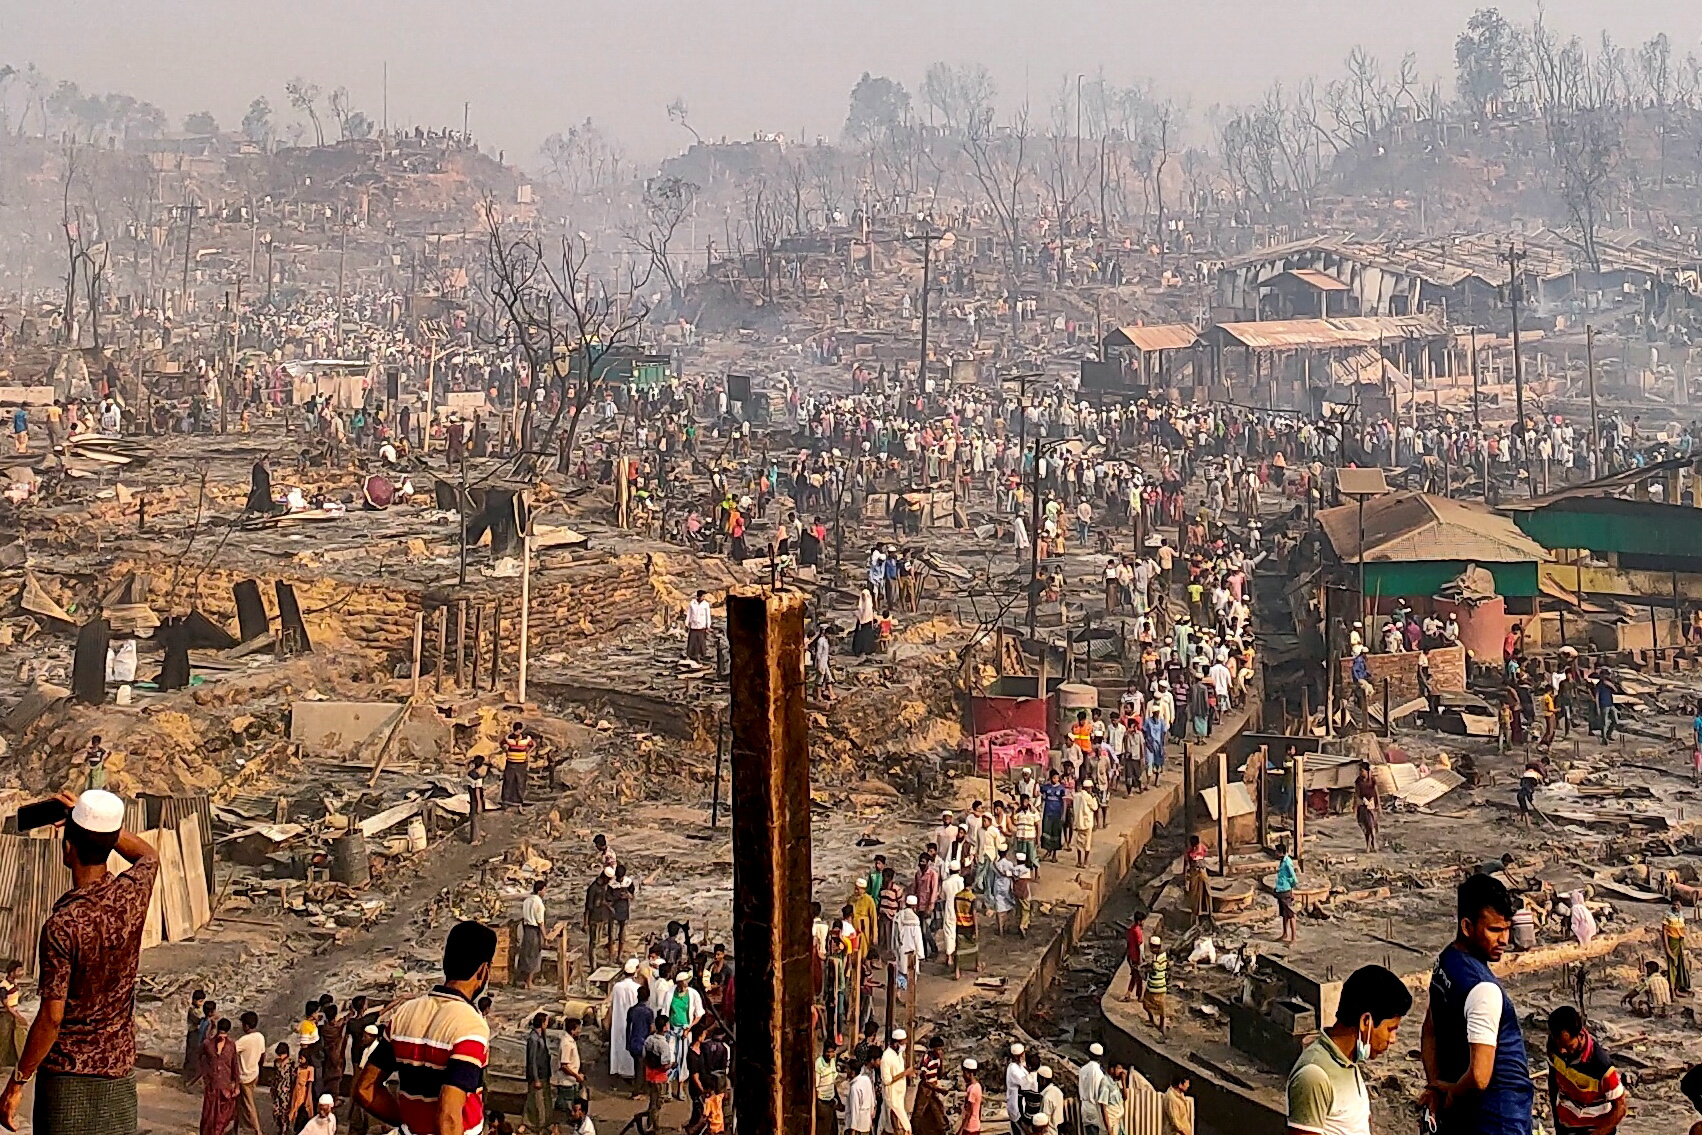 Fire destroys shelters in Rohingya refugee settlement in Cox's Bazar. © REUTERS